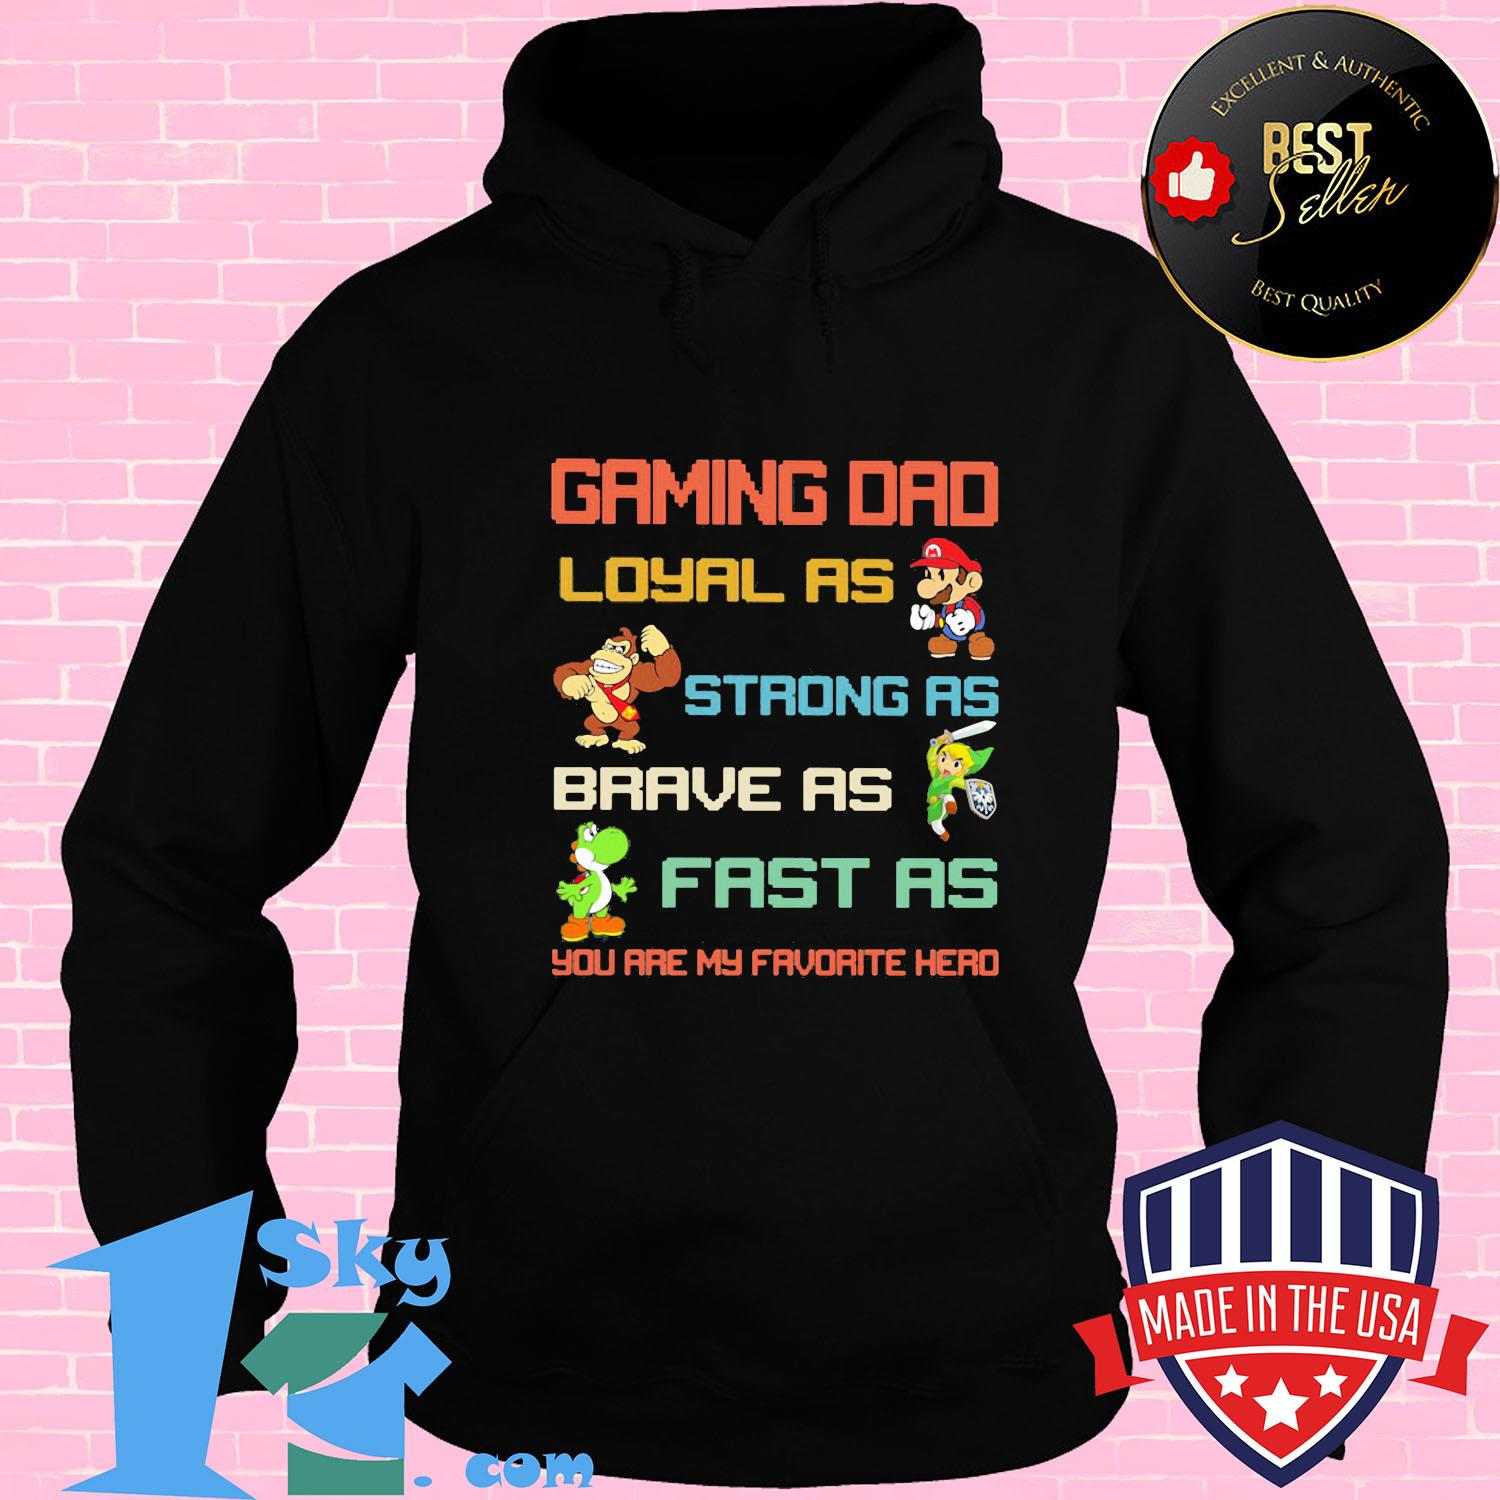 Gaming dad loyal as strong as brave as fast as you are favorite hero shirt